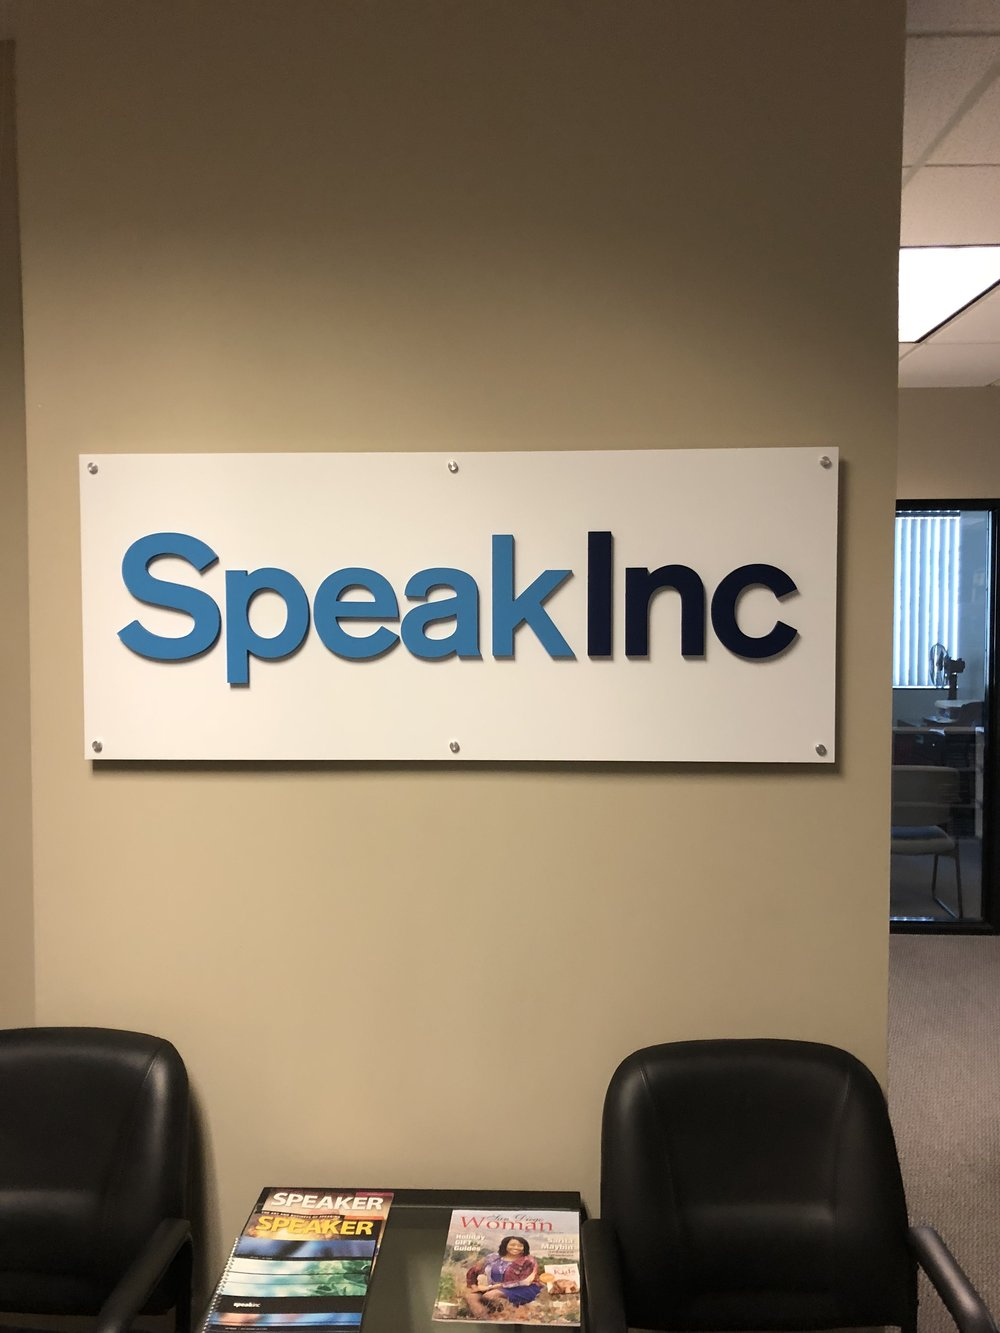 Walking into Speak Inc!